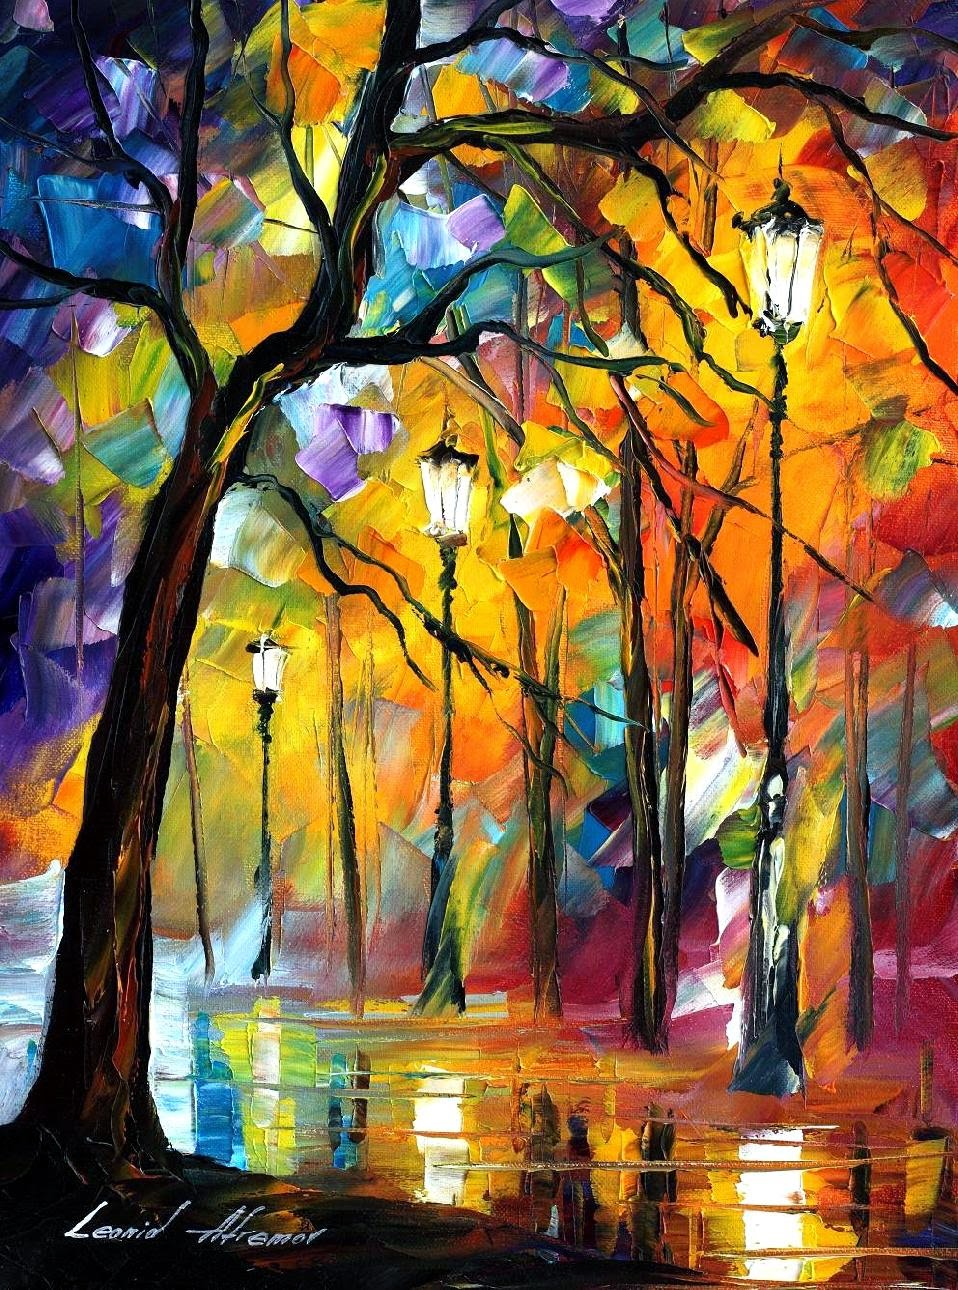 05-Leonid-Afremov-Expression-of-Love-for-the-Art-Of-Painting-www-designstack-co